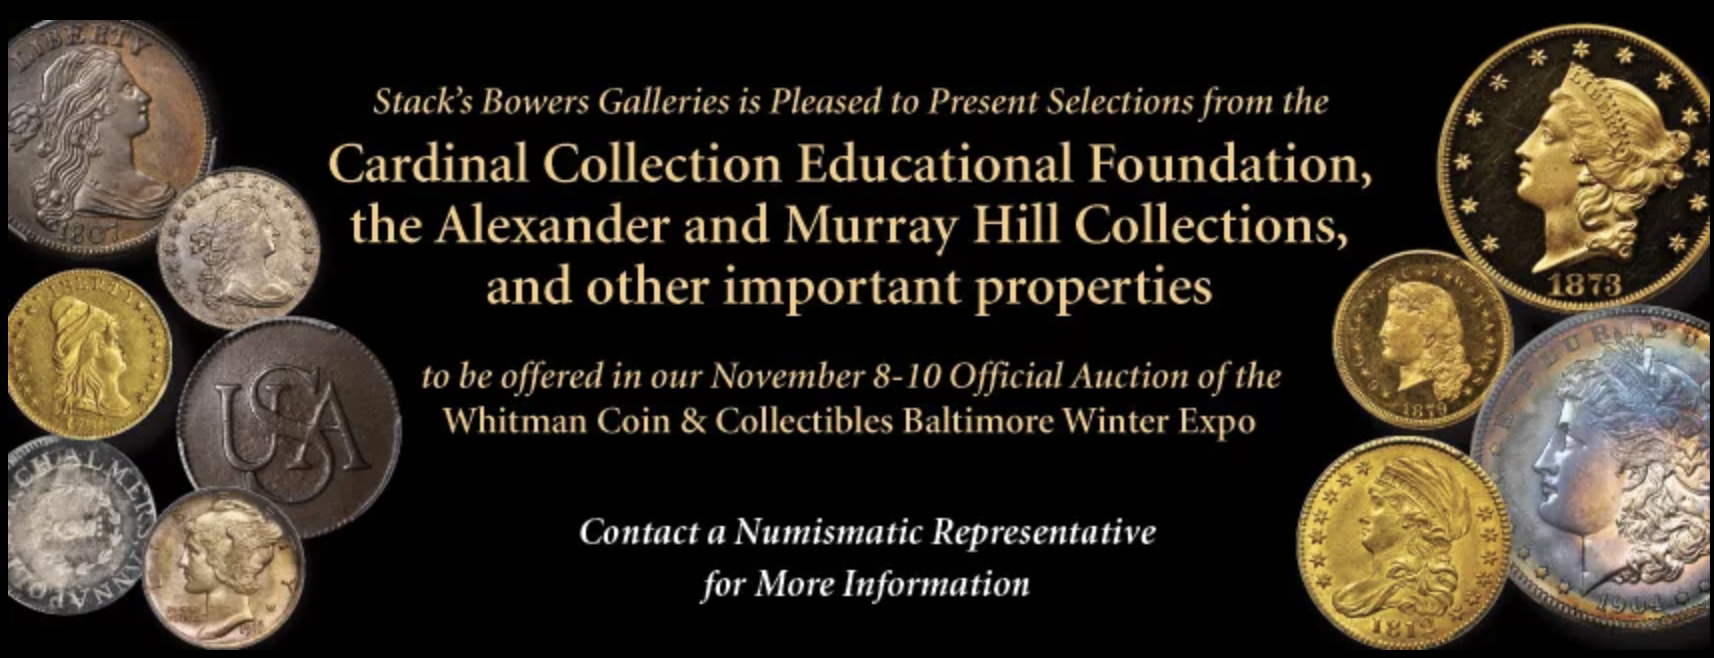 thumbnail image for PRESS RELEASE: Exciting Early American Coins and Numismatic Americana to Highlight the Stack's Bowers Galleries Official Auction of the November 2017 Whitman Coins & Collectibles Baltimore Expo